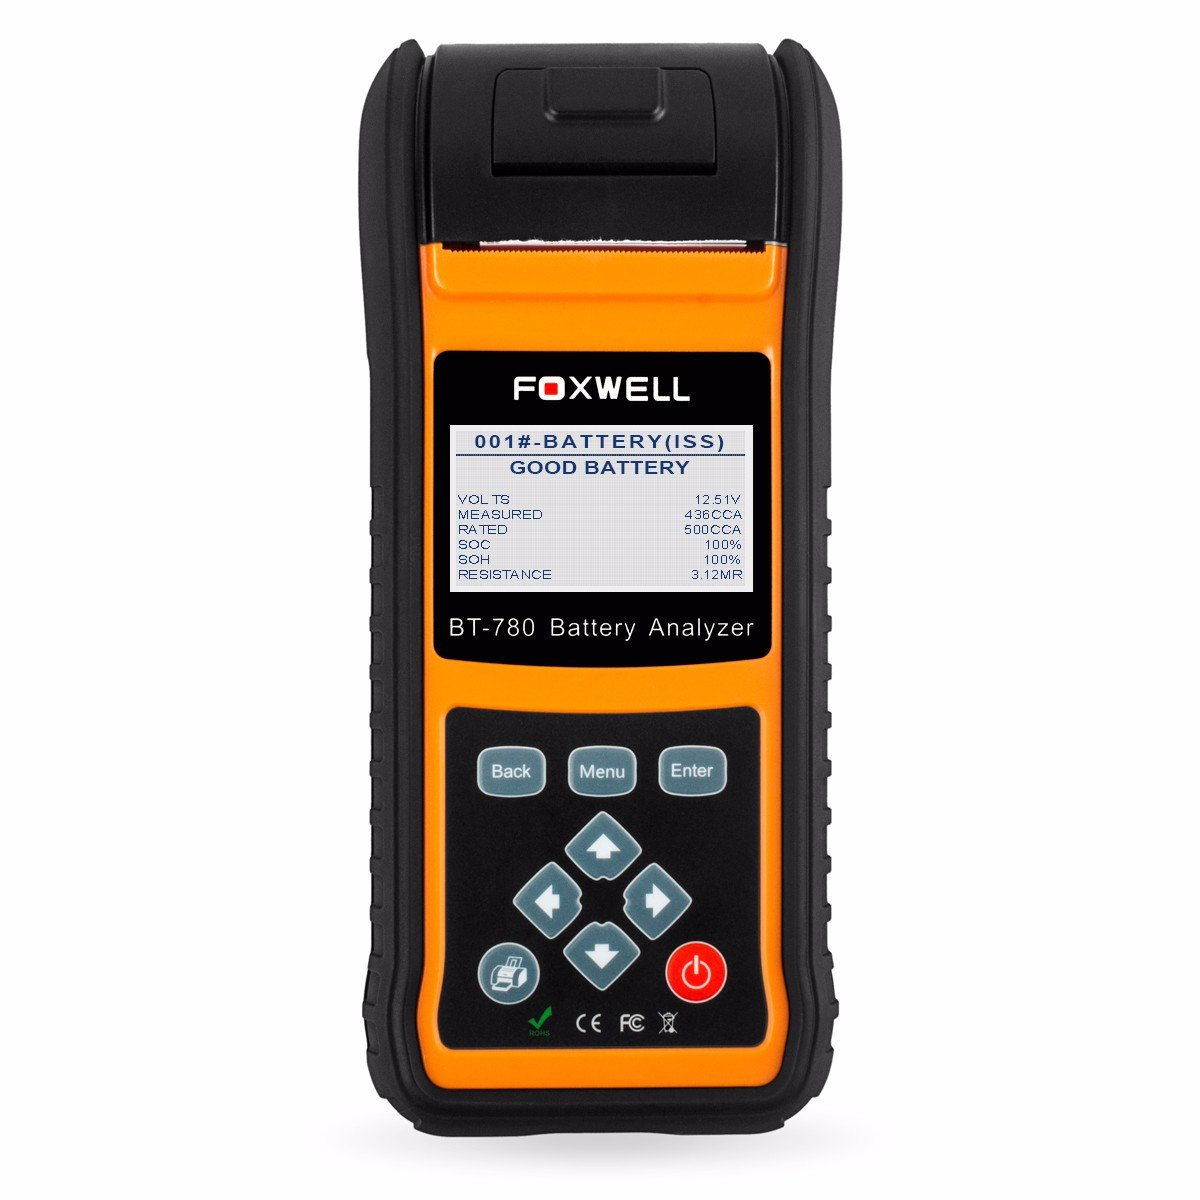 FOXWELL BT-780 Car Battery Load Tester 12V&24V Starting and Charging System Analyzer with Built-in Thermal Printer for Start-Stop AGM and EFB Batteries